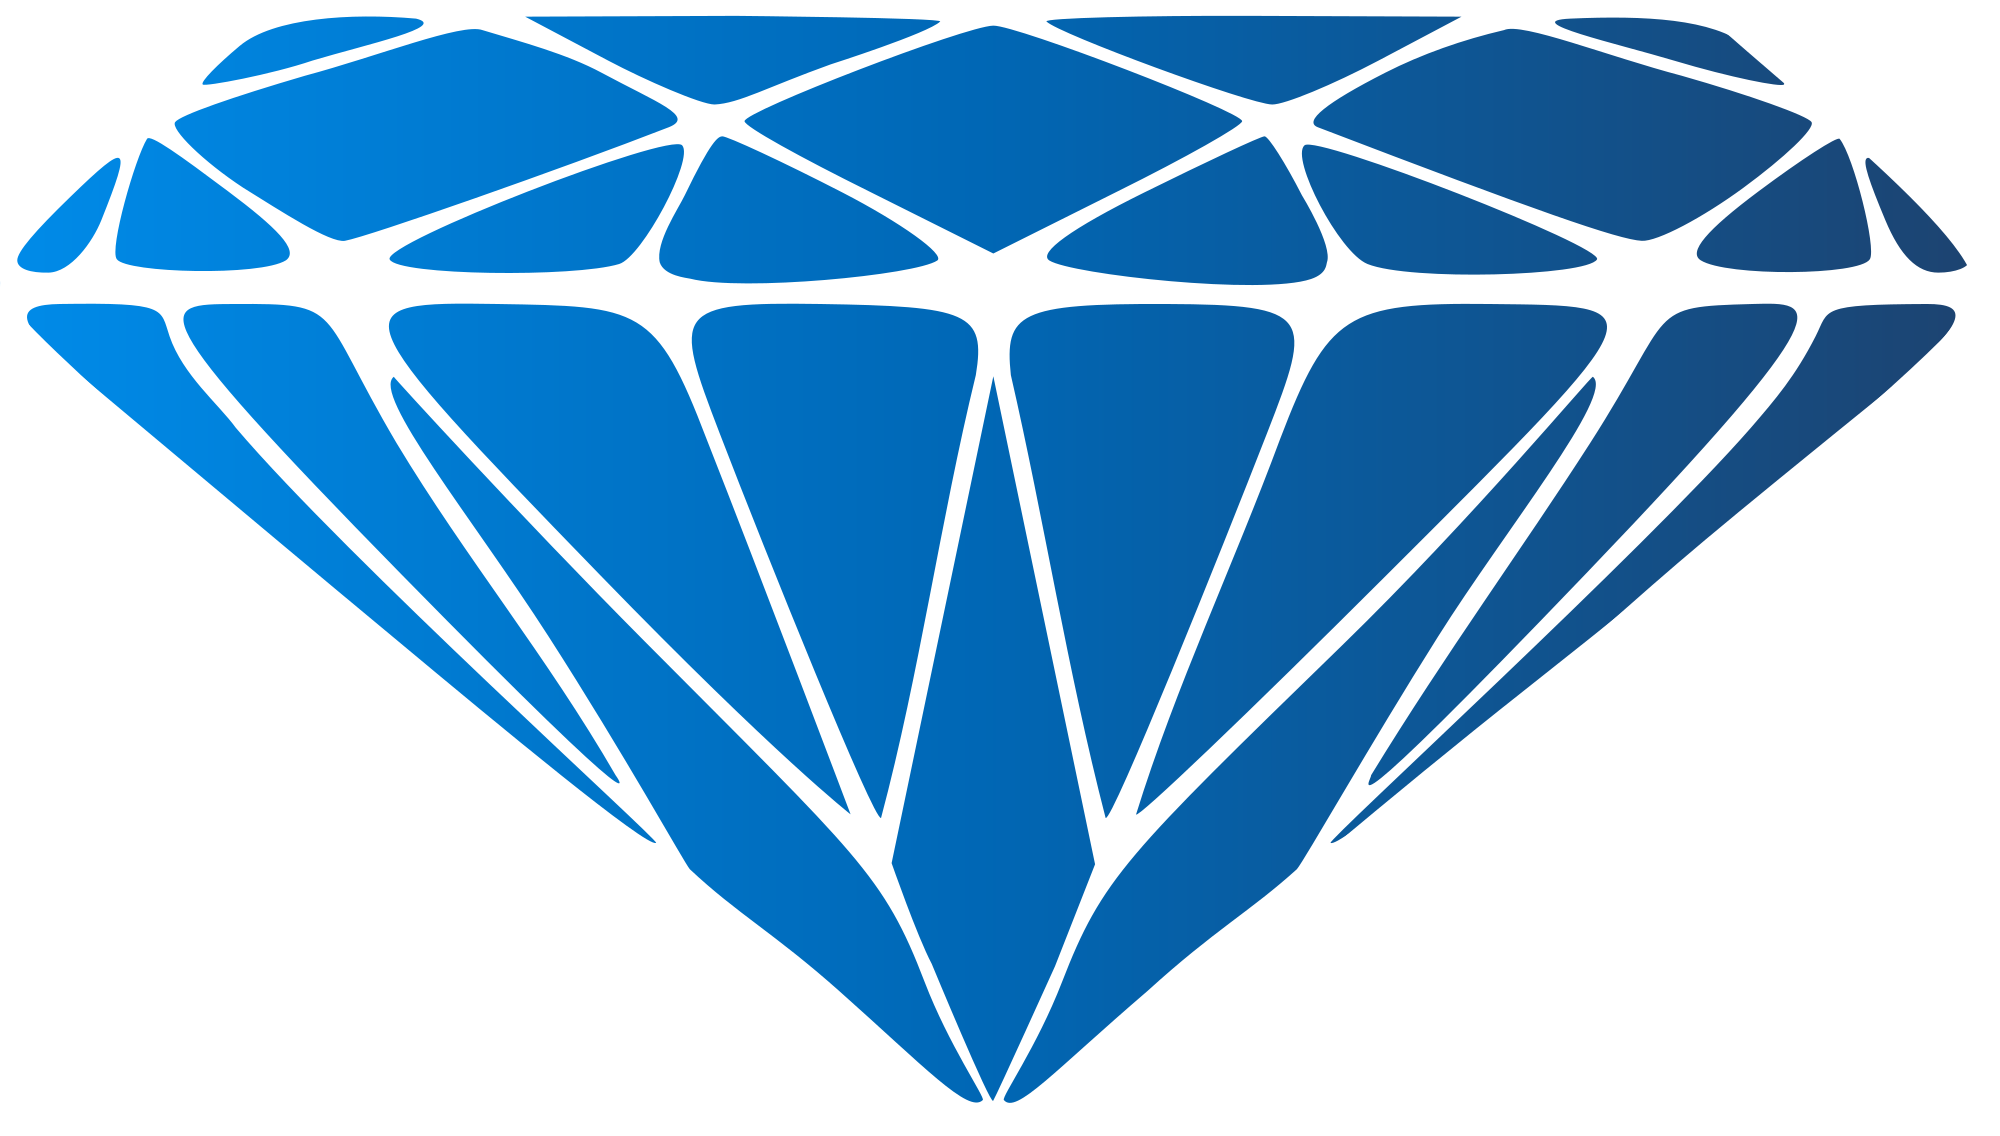 for free download. Clipart diamond svg